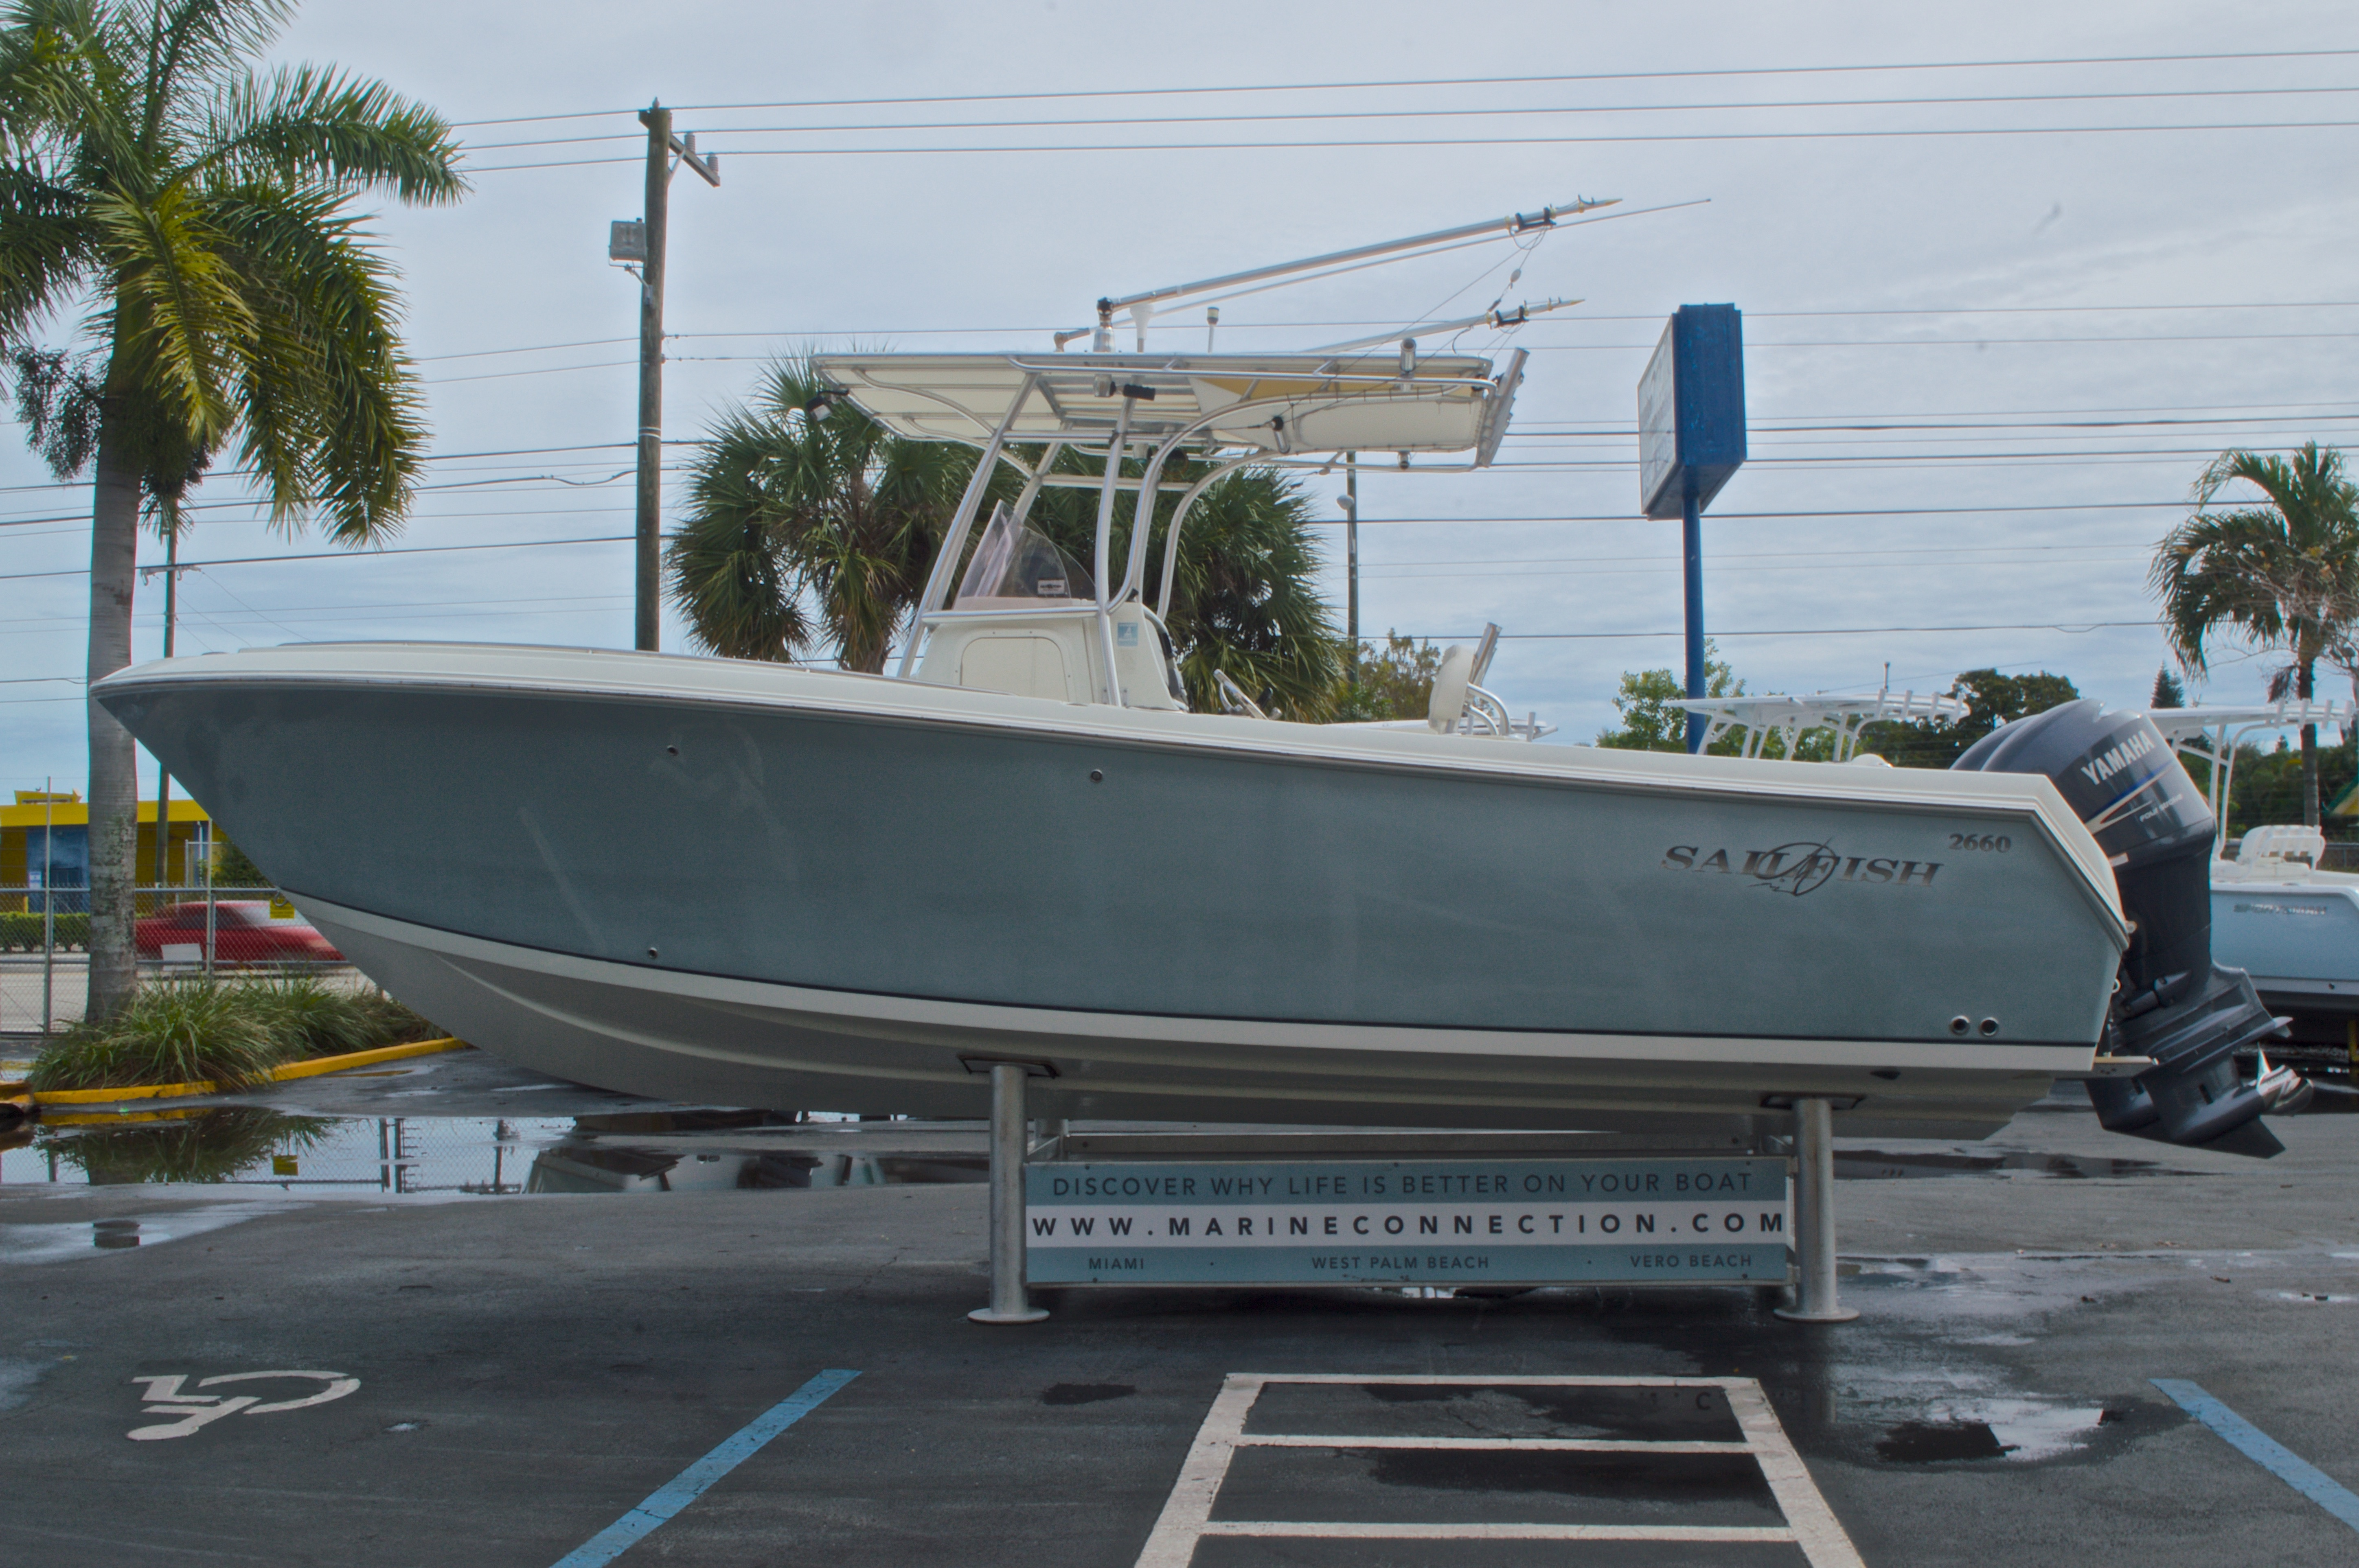 Thumbnail 5 for Used 2008 Sailfish 2660 CC Center Console boat for sale in West Palm Beach, FL